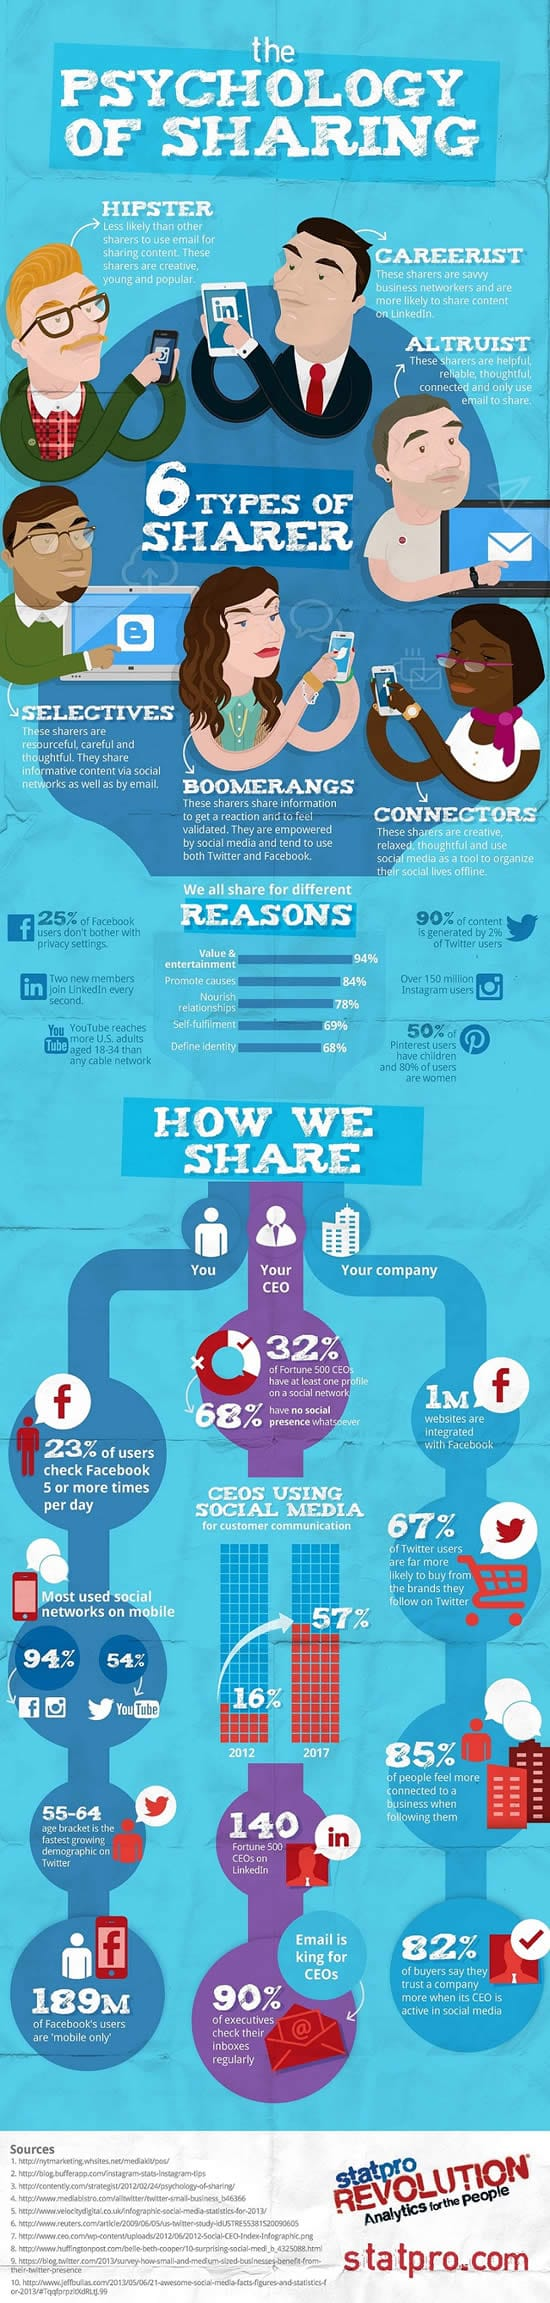 The psychology of sharing – infographic by StatPro via MarketingProfs – click to view larger version